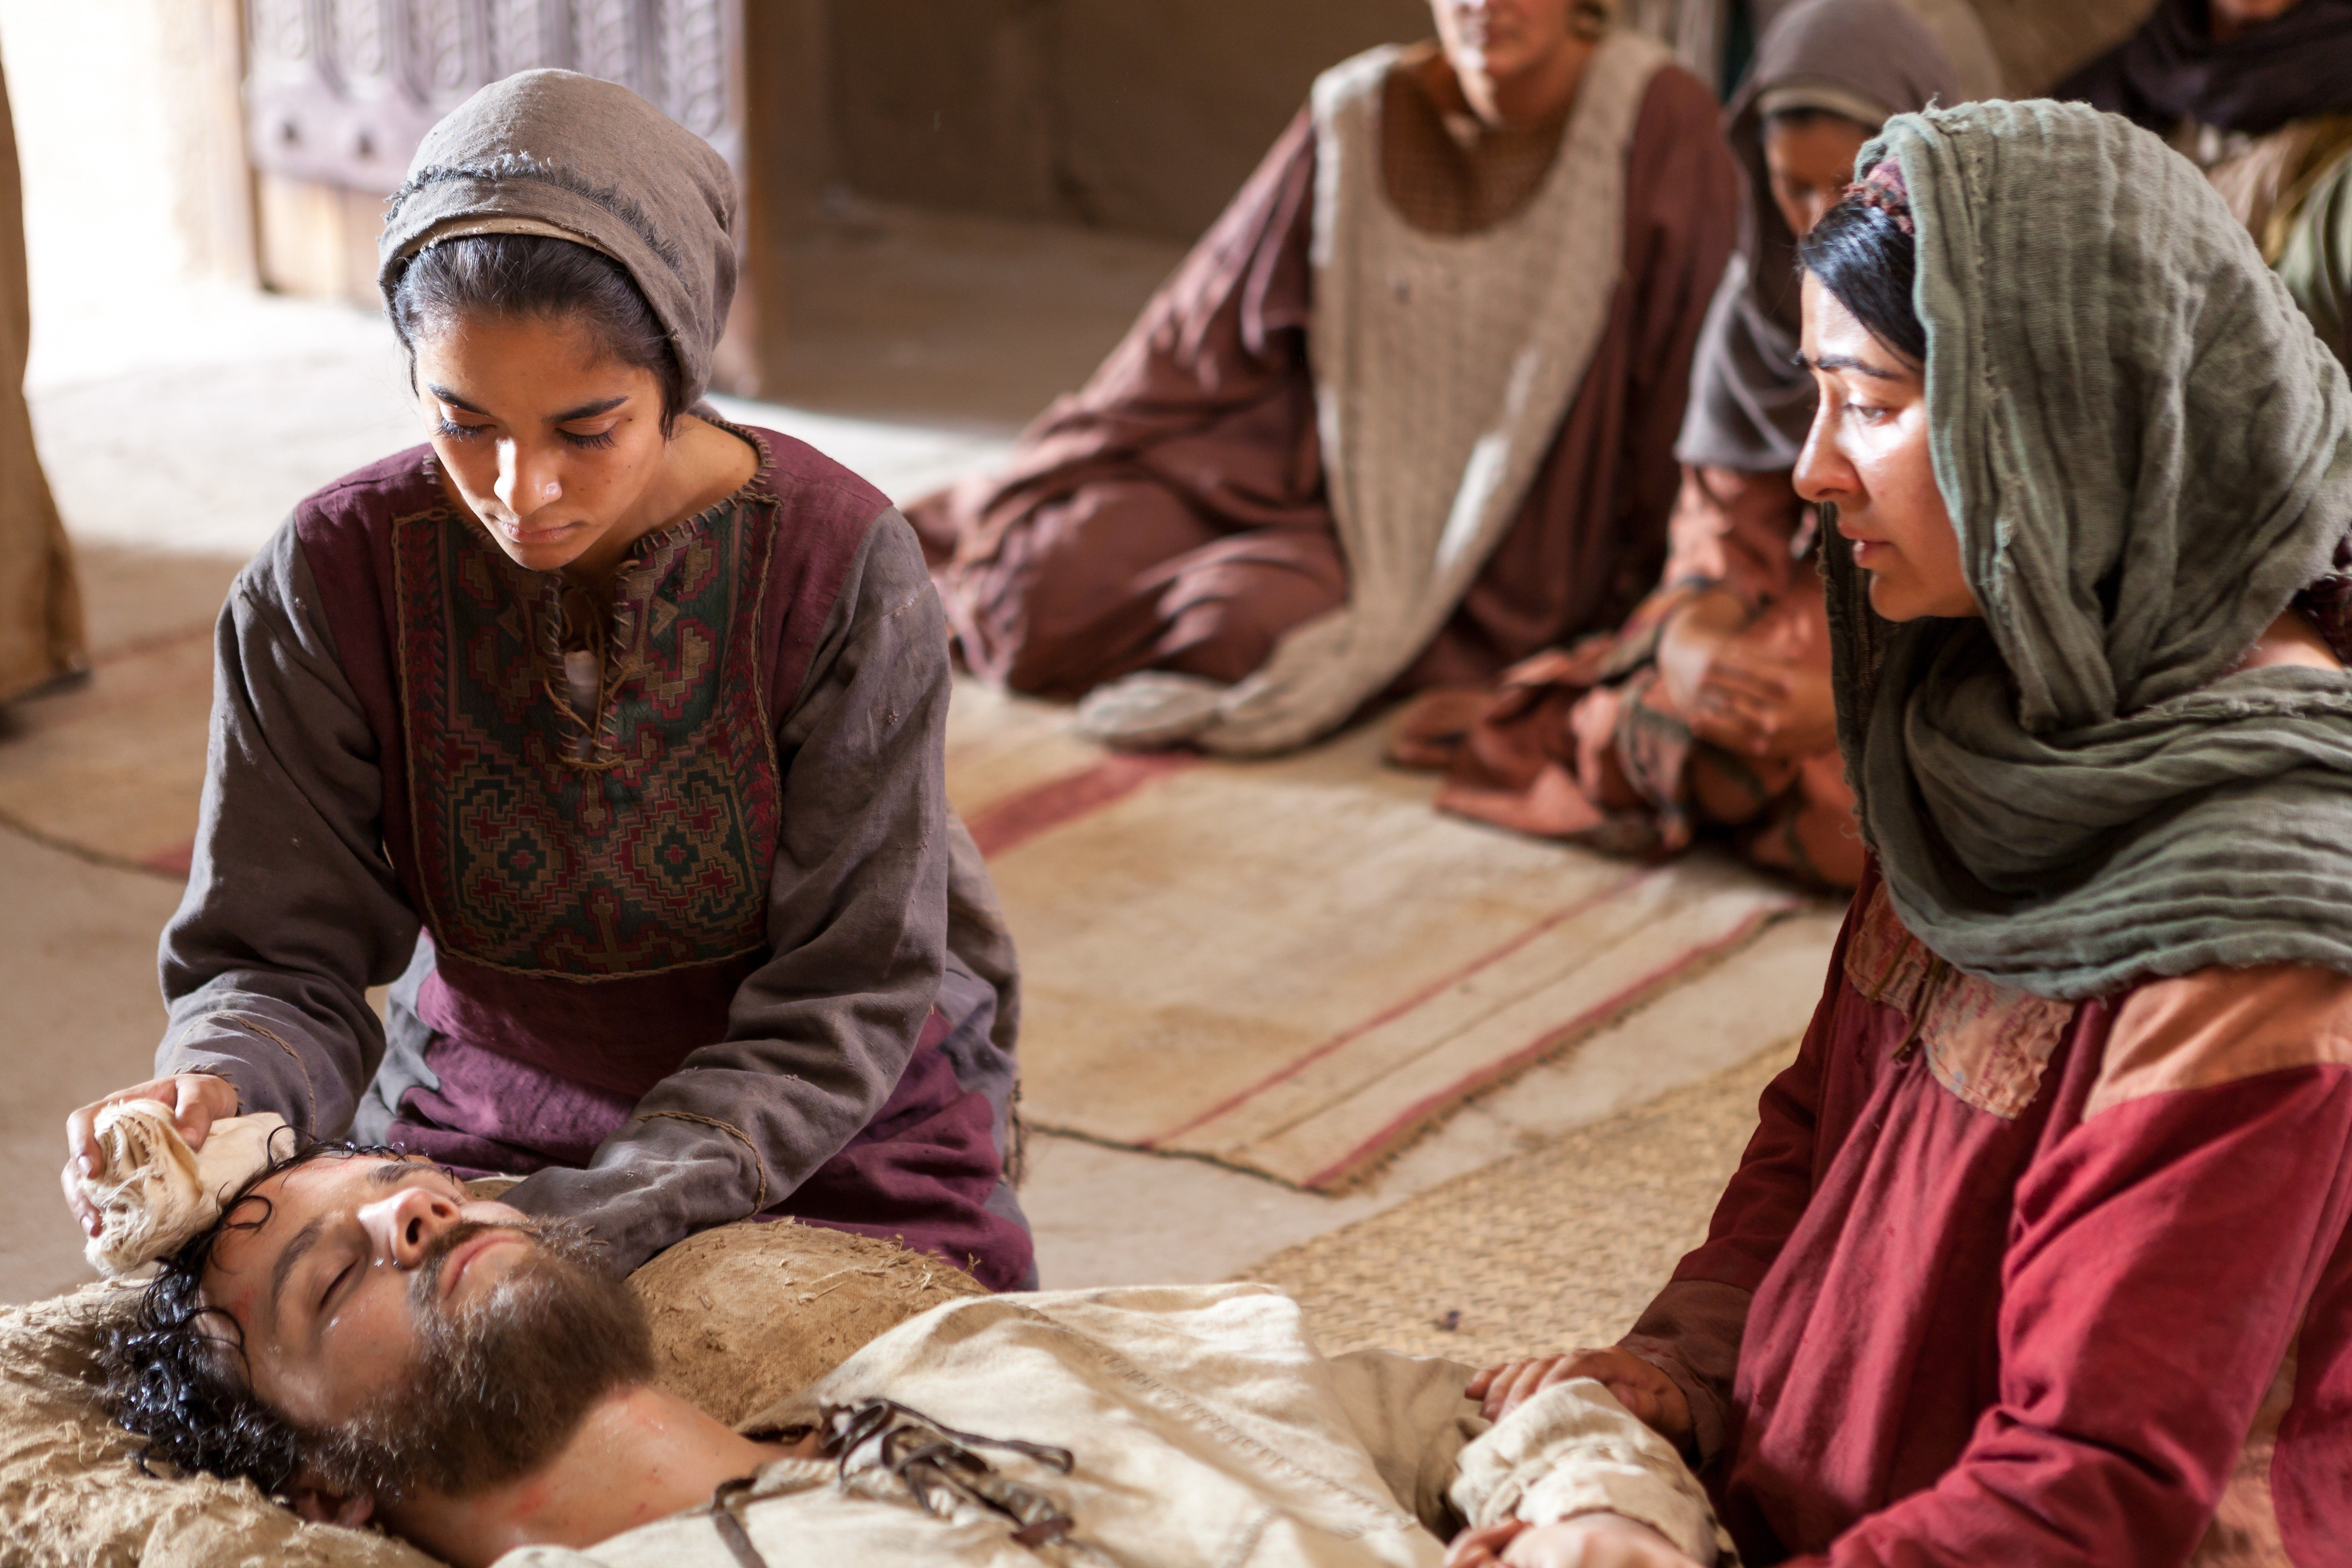 Mary and Martha tending to their brother Lazarus, who is ill.